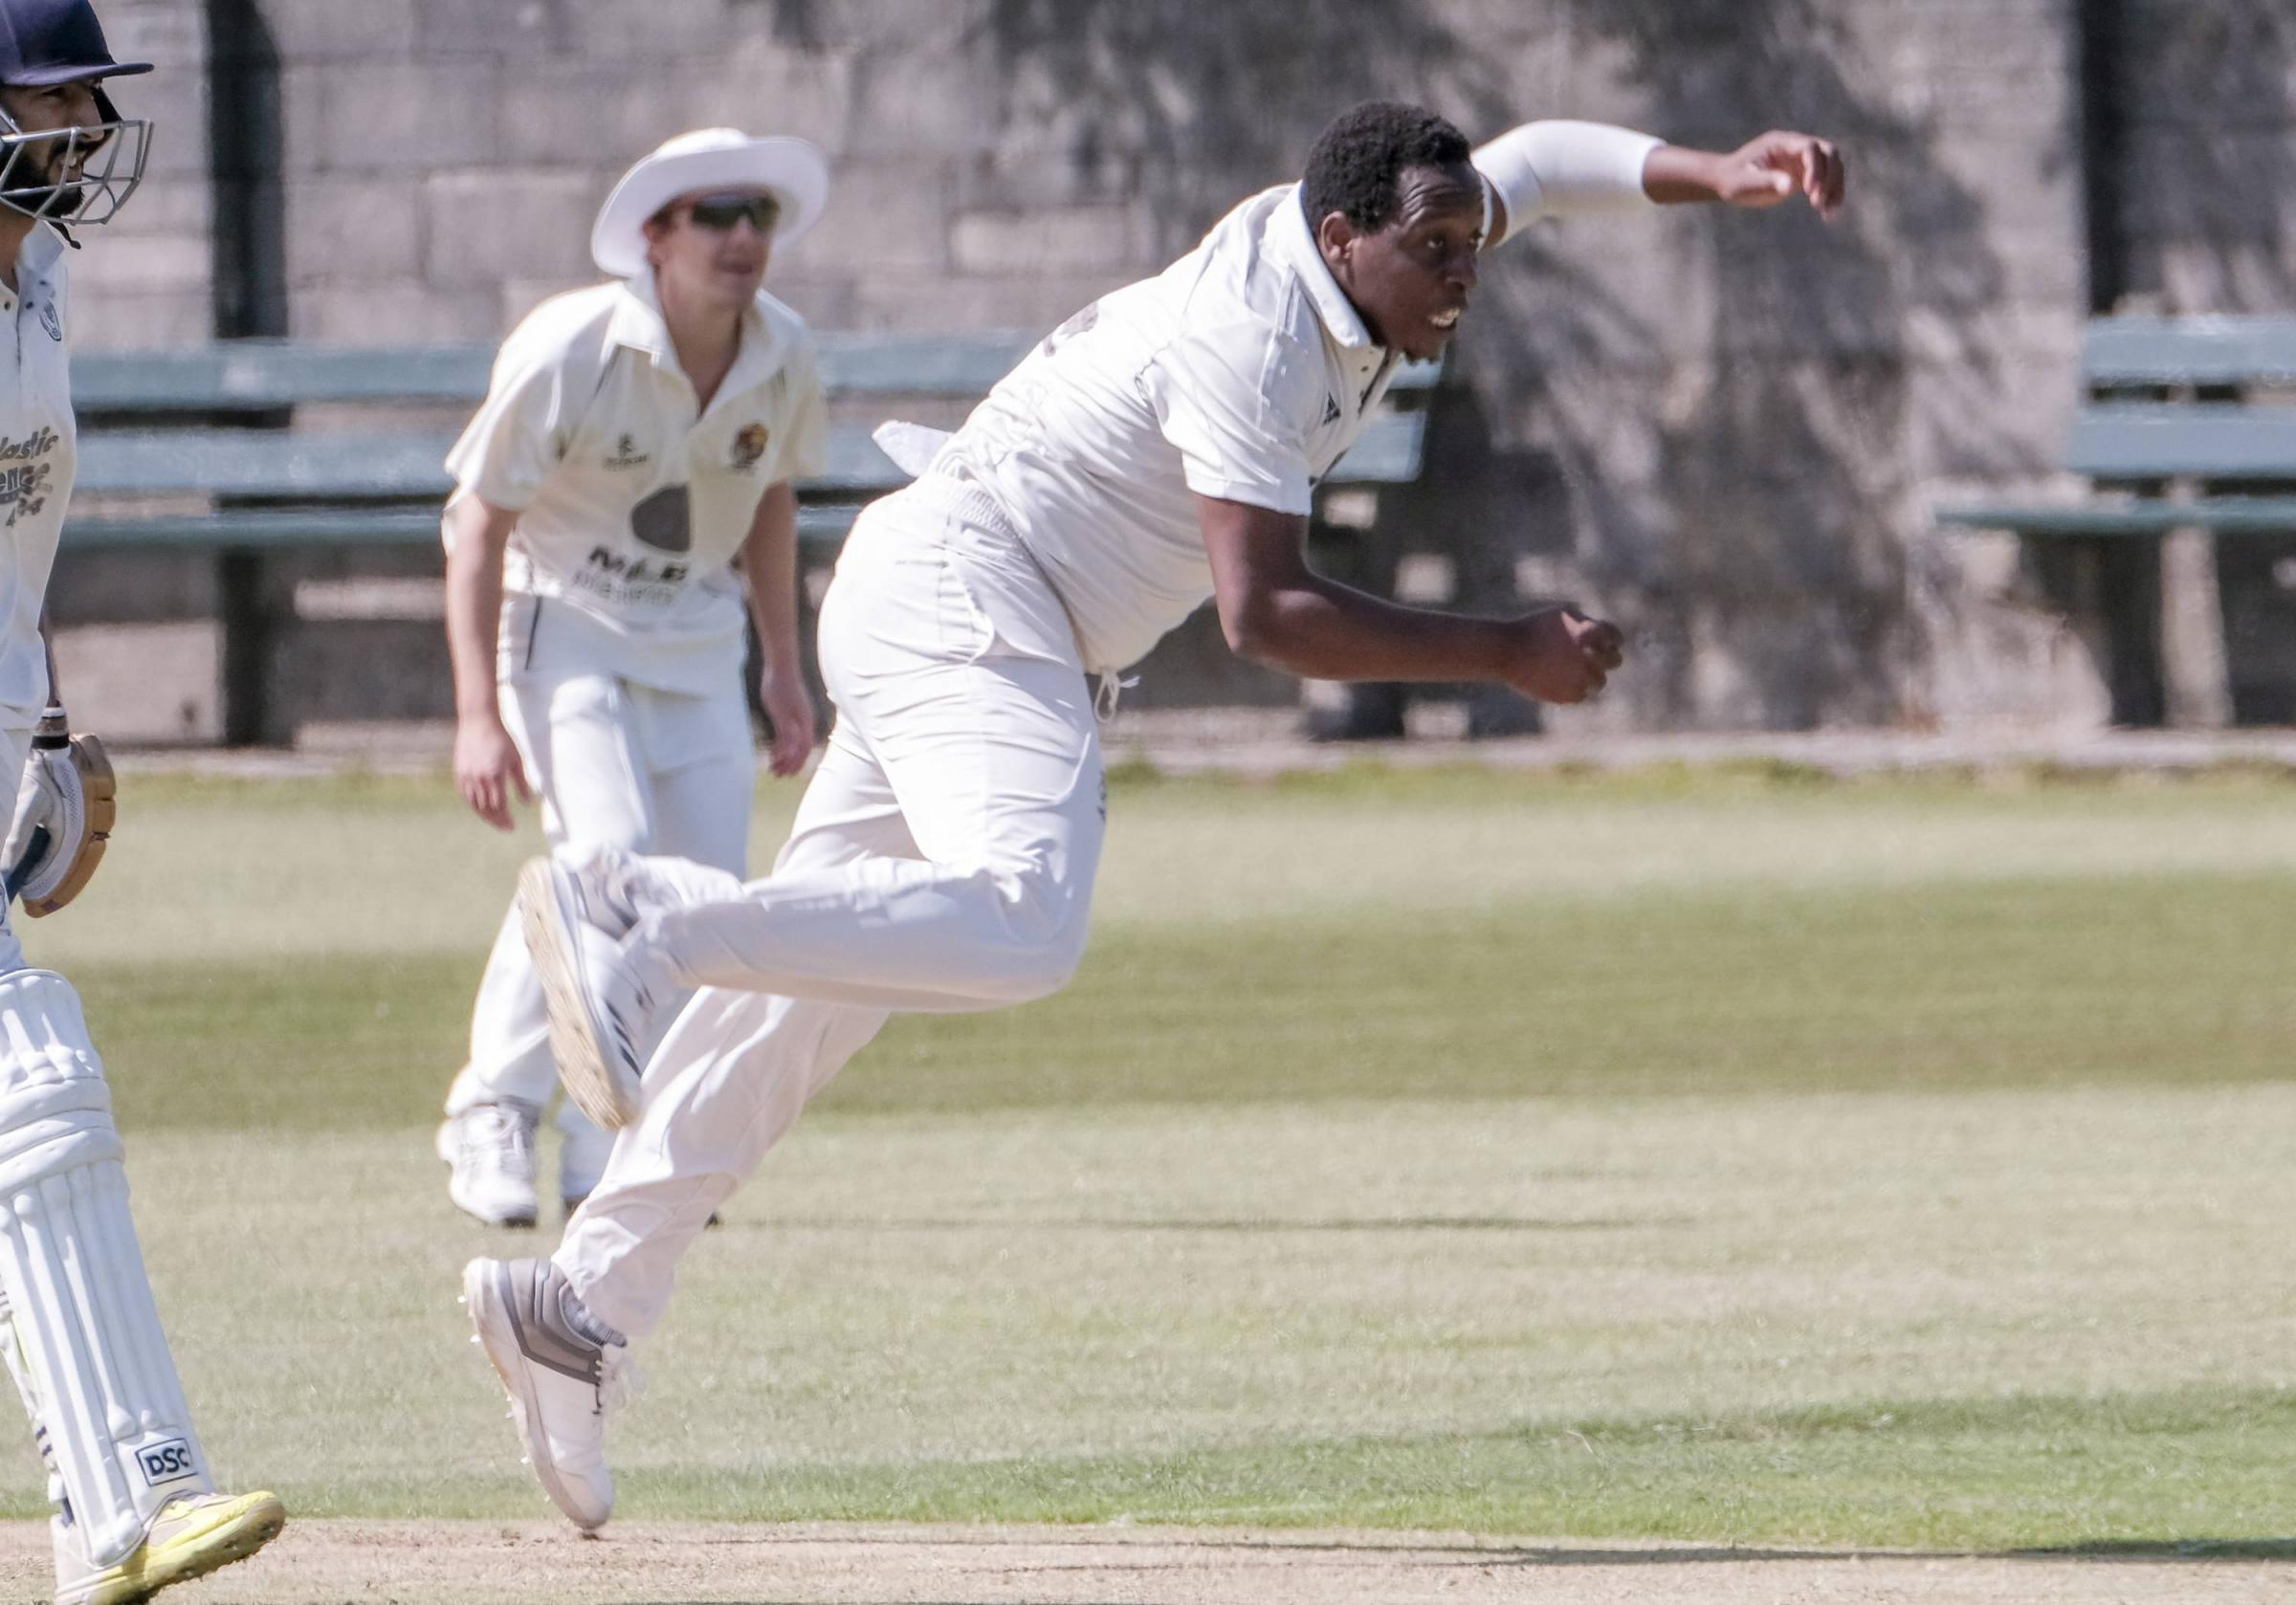 ALL-ROUNDER: Dalton professional Winstone Masakadza starred with bat and ball against Whitehaven		Picture: Milton Haworth